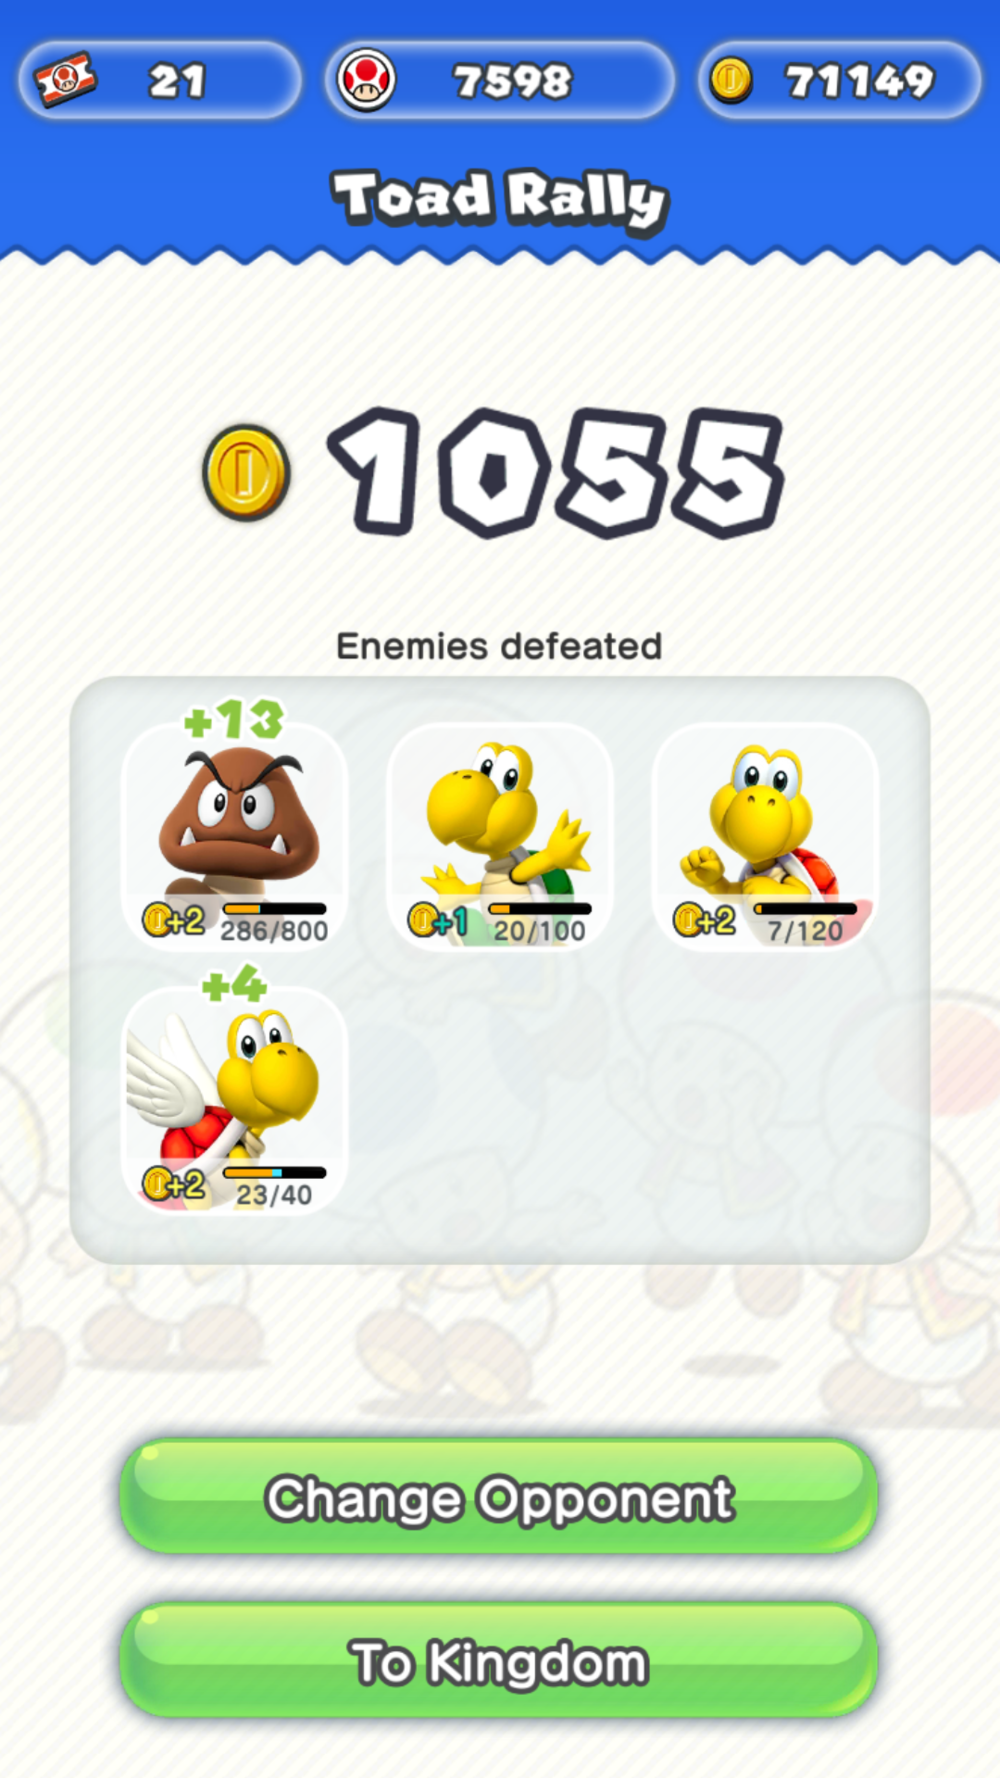 Post Toad Rally Screen - Enemies Defeated